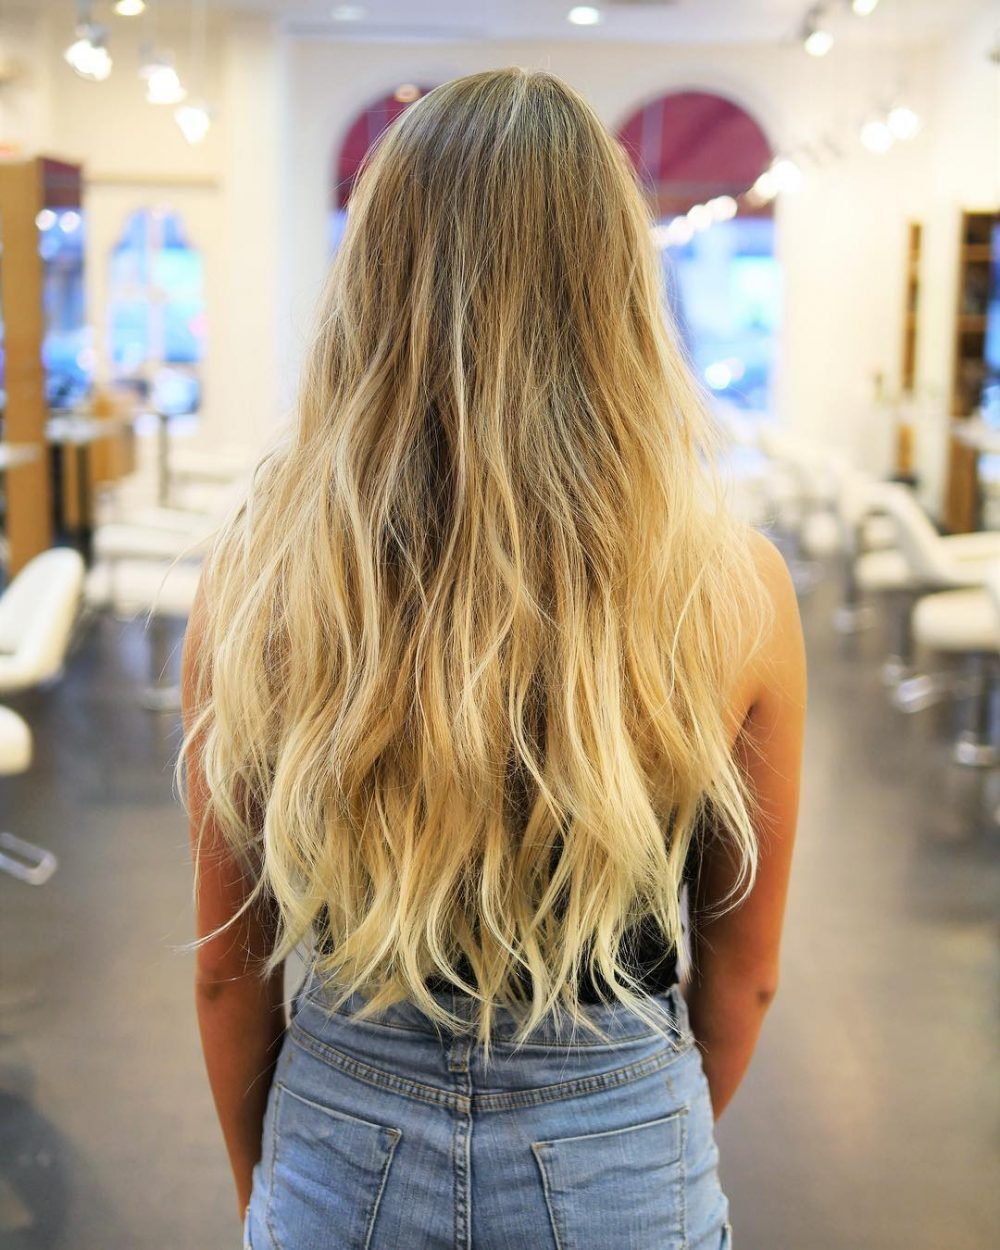 Original long style for look girlish Layer Hairstyle